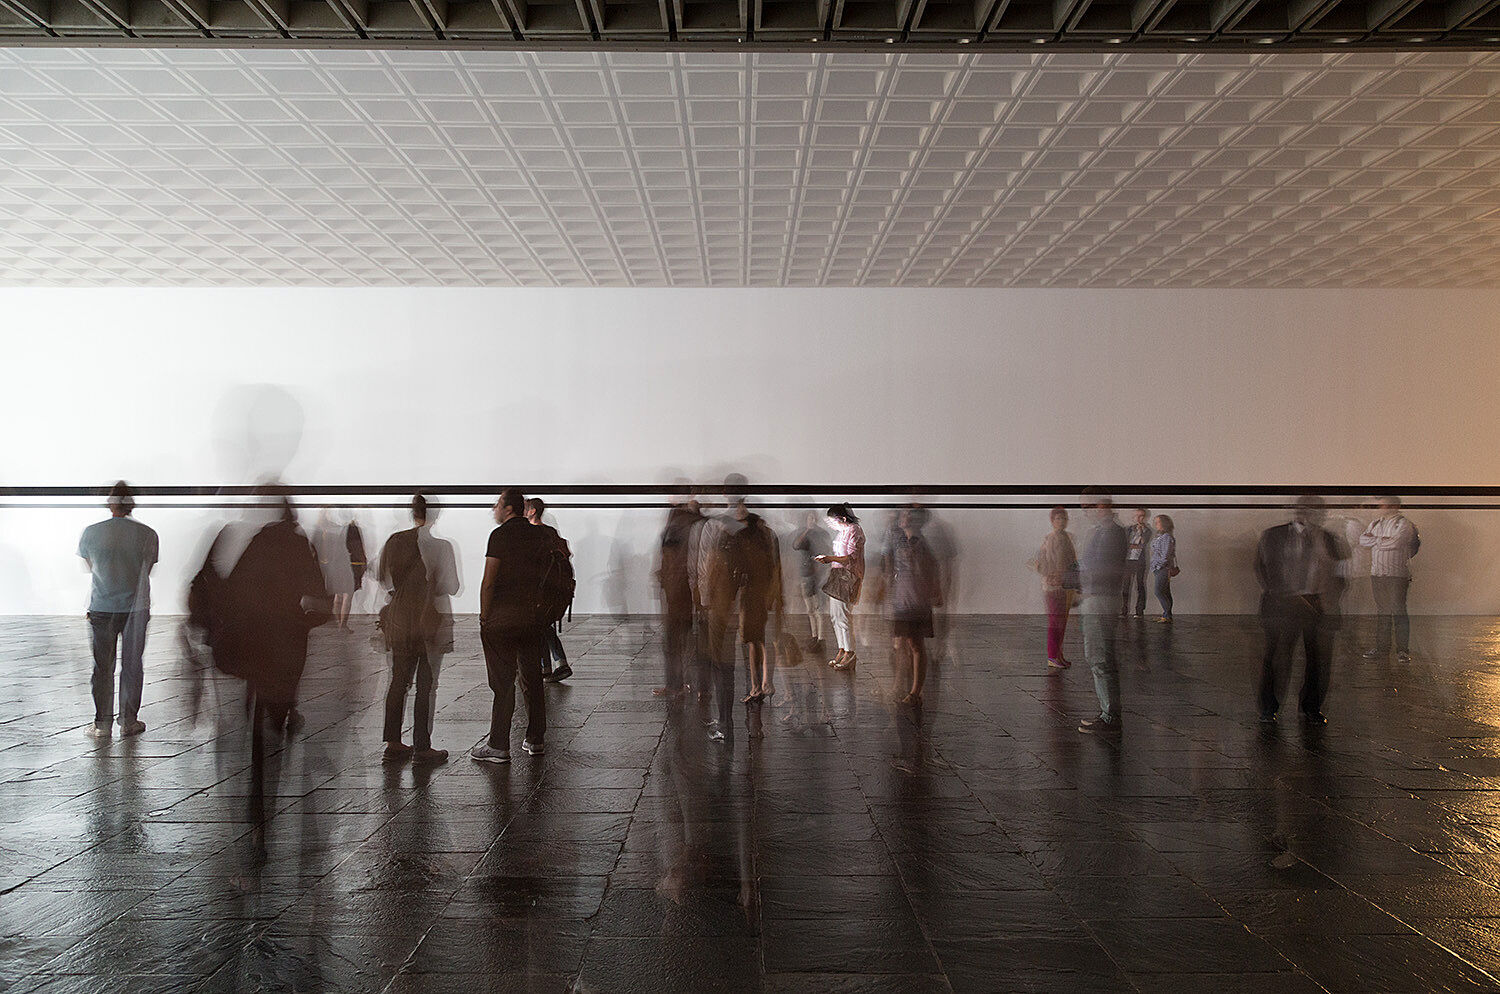 Blurred outlines of people standing in a gallery.